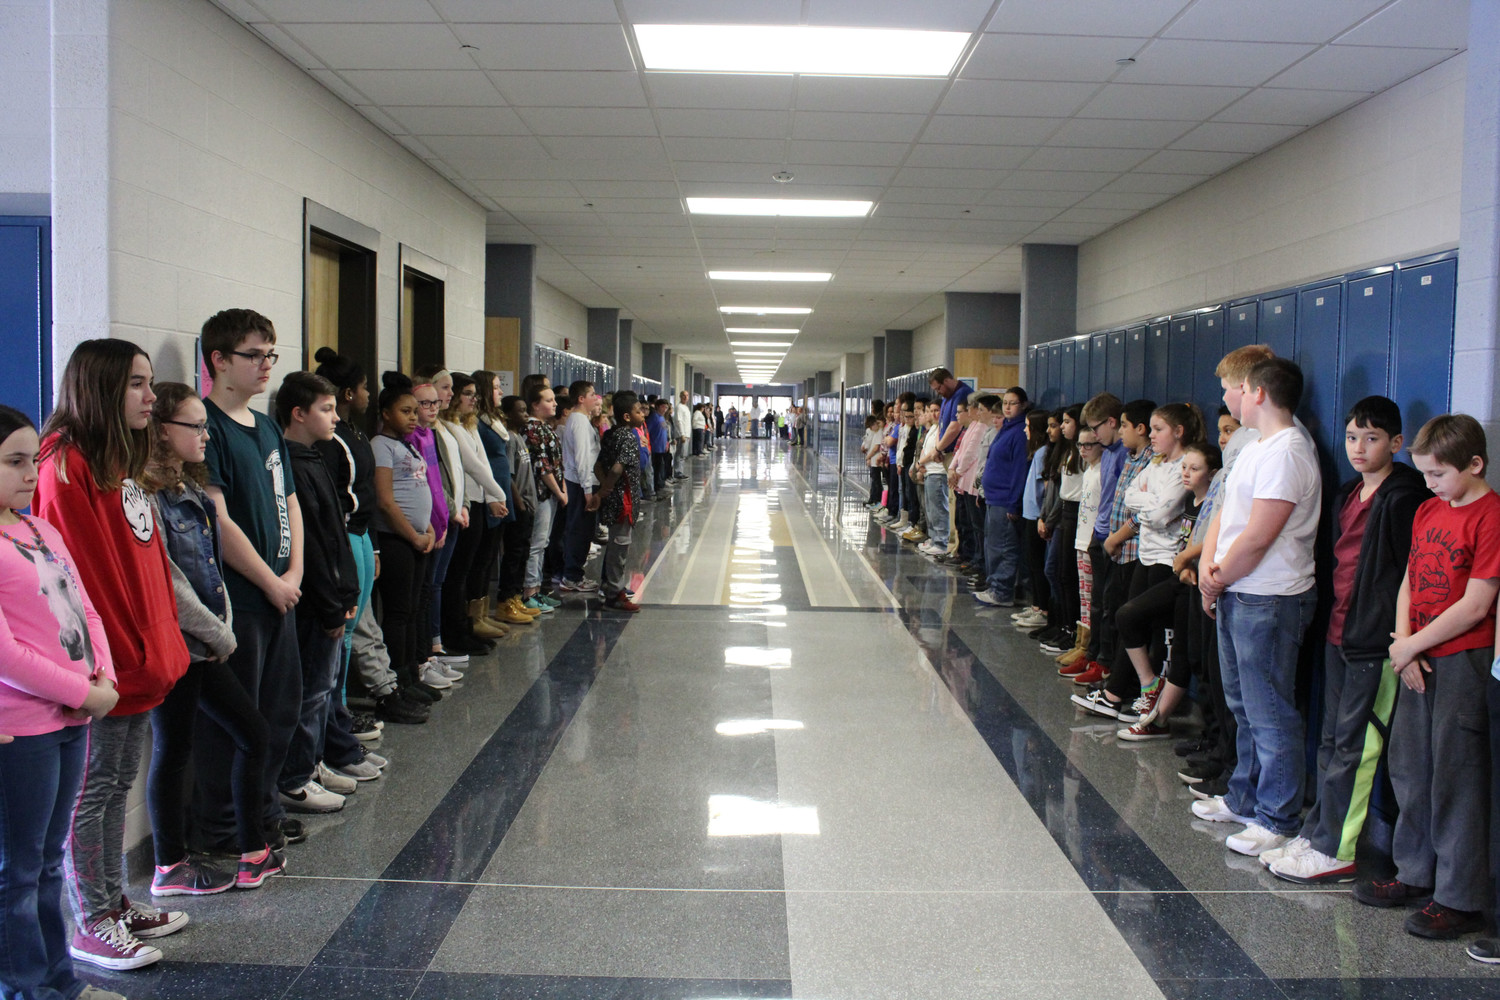 MAMS students stood shoulder-to-shoulder in silence as 17 chimes played over the intercom in memory of the people who died in Parkland, Fla.